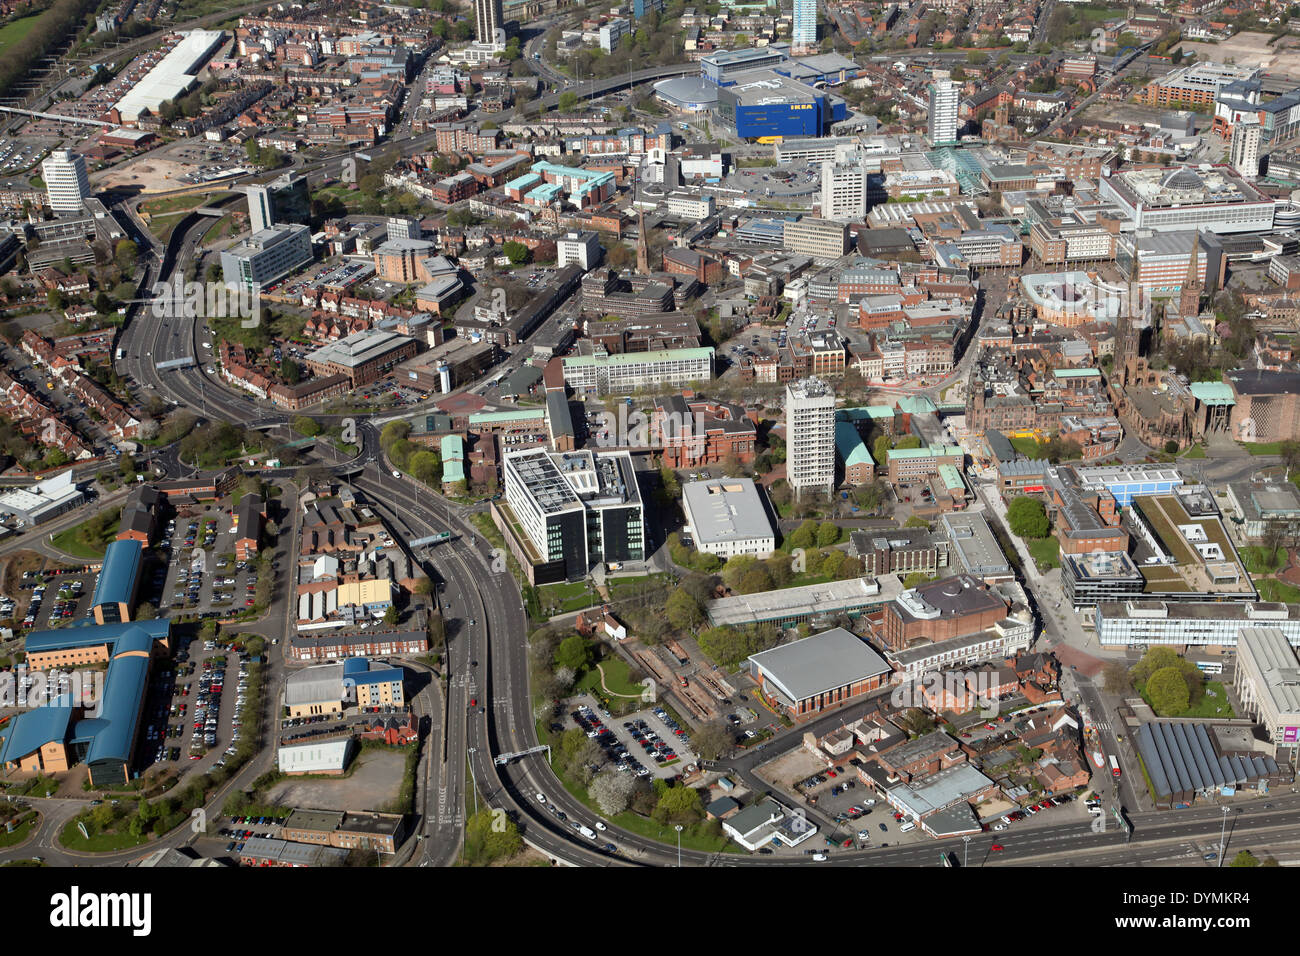 aerial view of Coventry city centre including St Michael's Cathedral - Stock Image